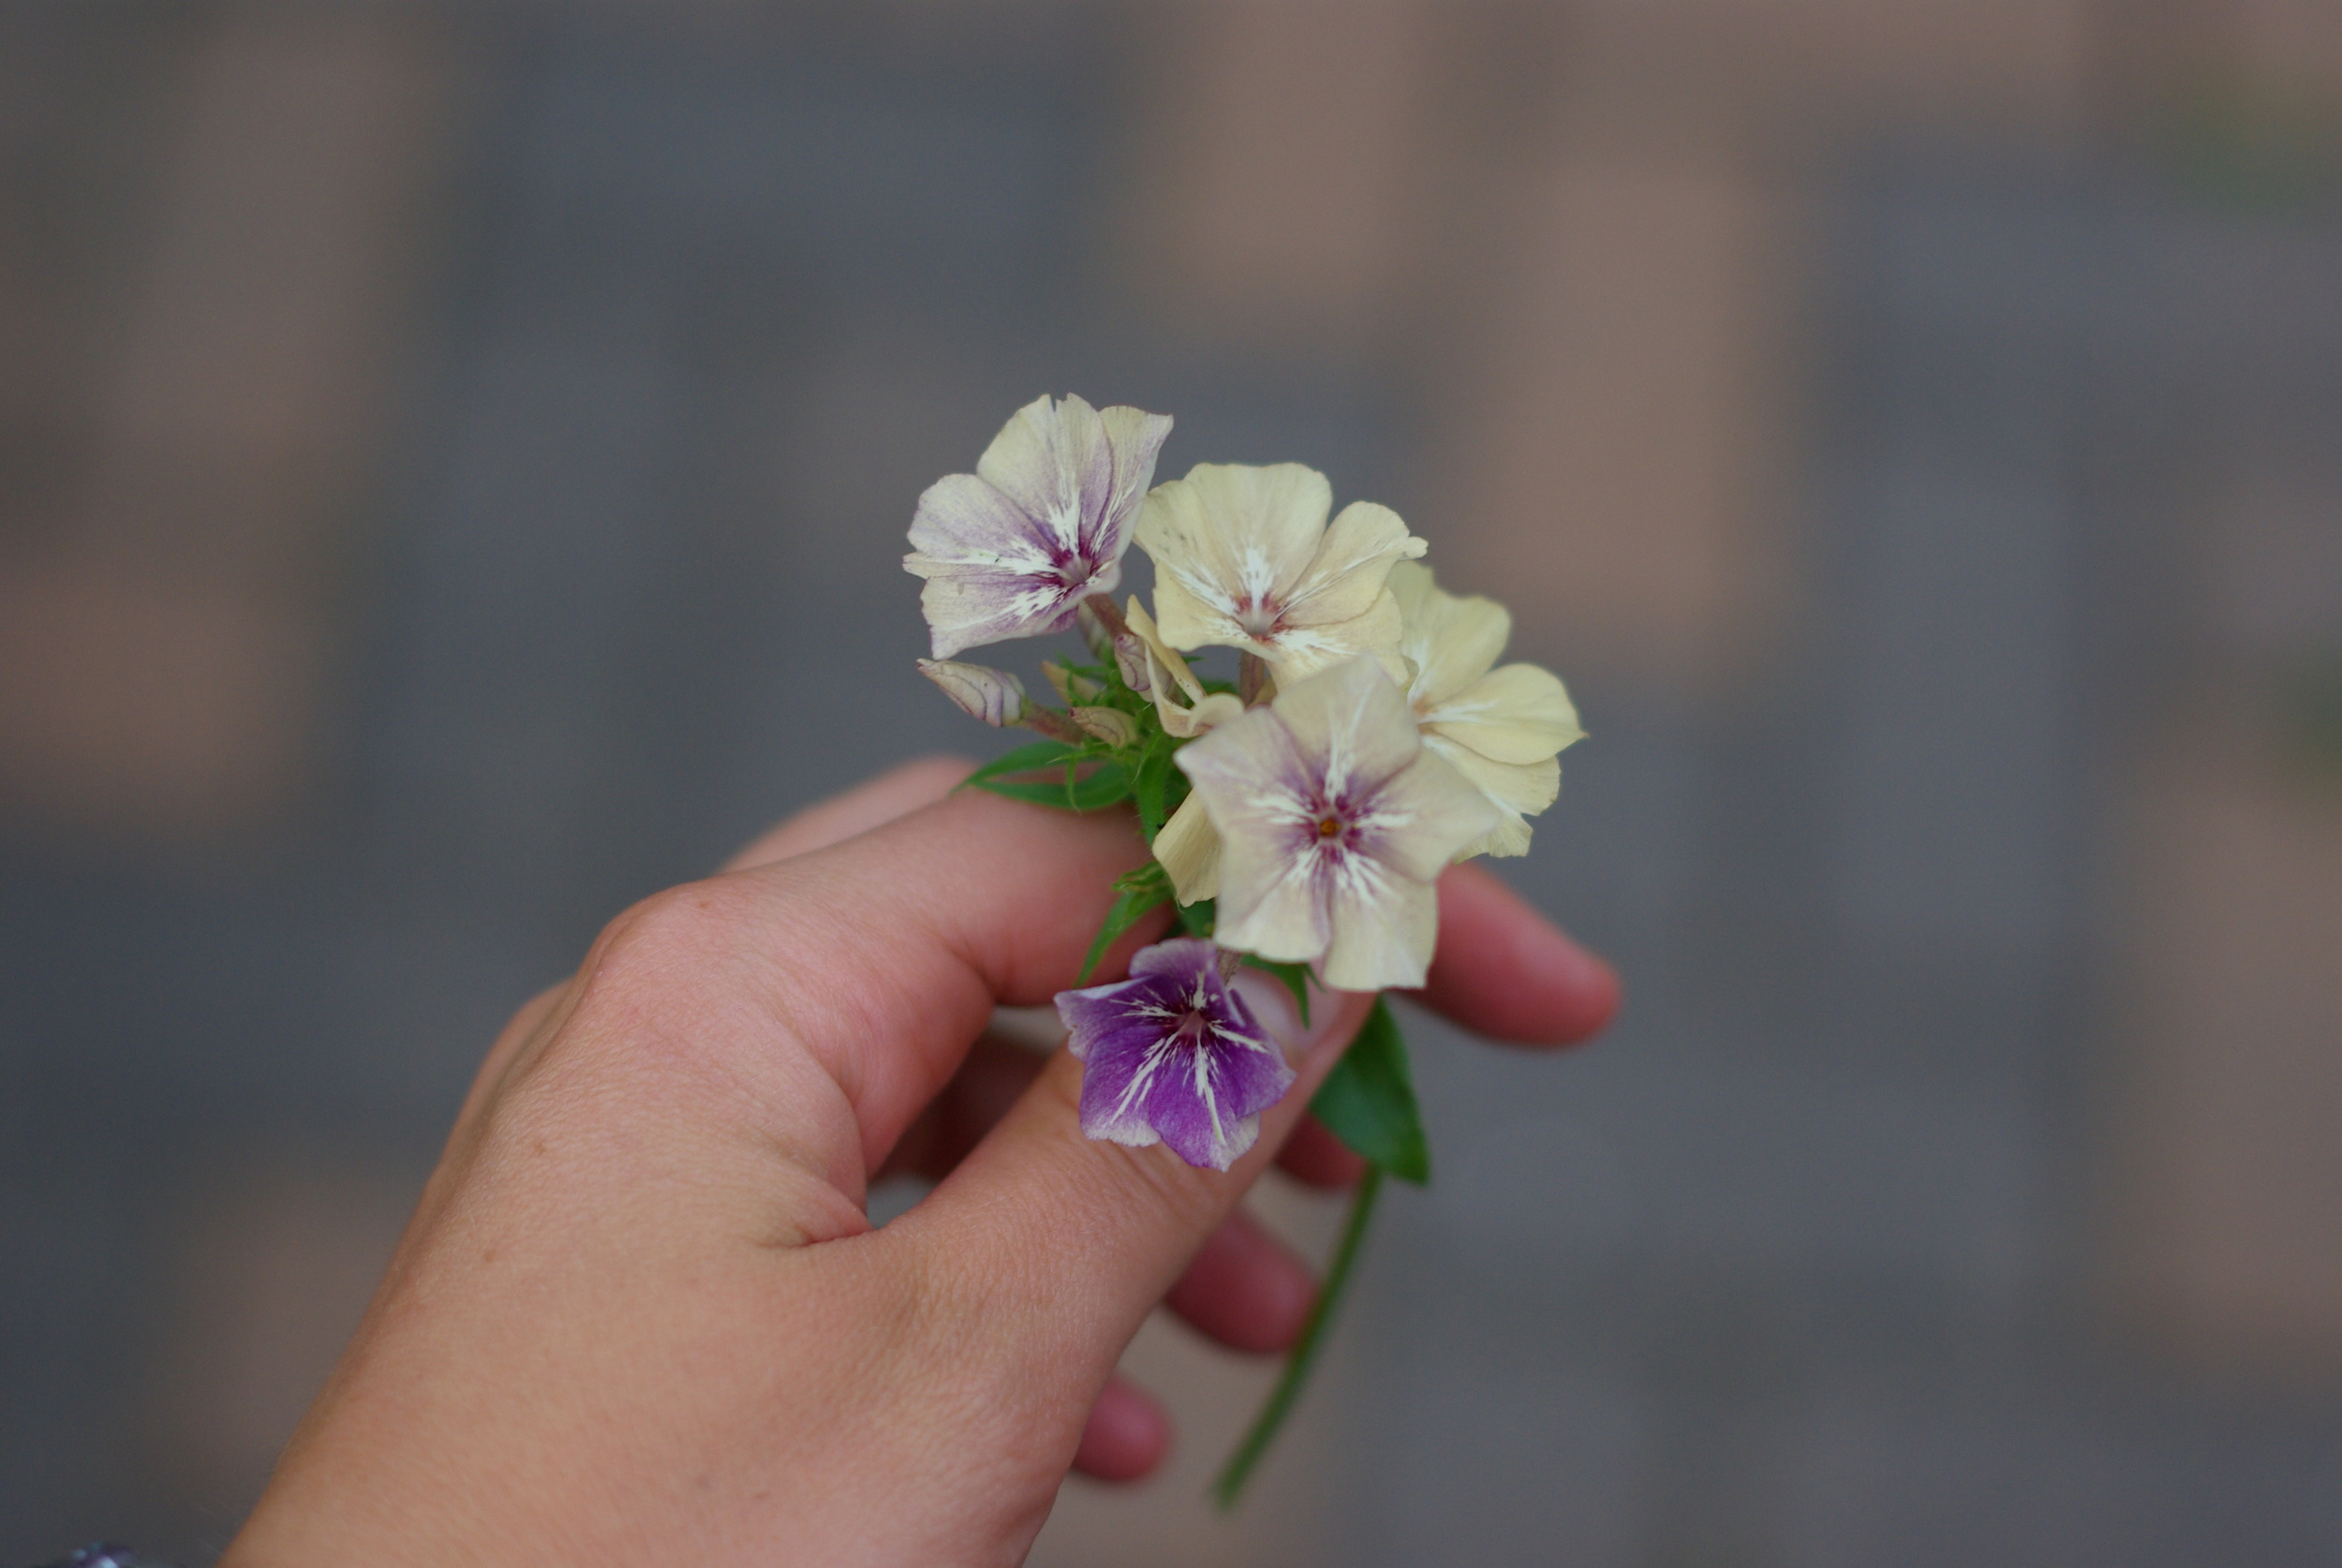 I am in LOVE with this phlox called 'Creme Brulee' which I grew from seed from Chiltern Seeds in the UK